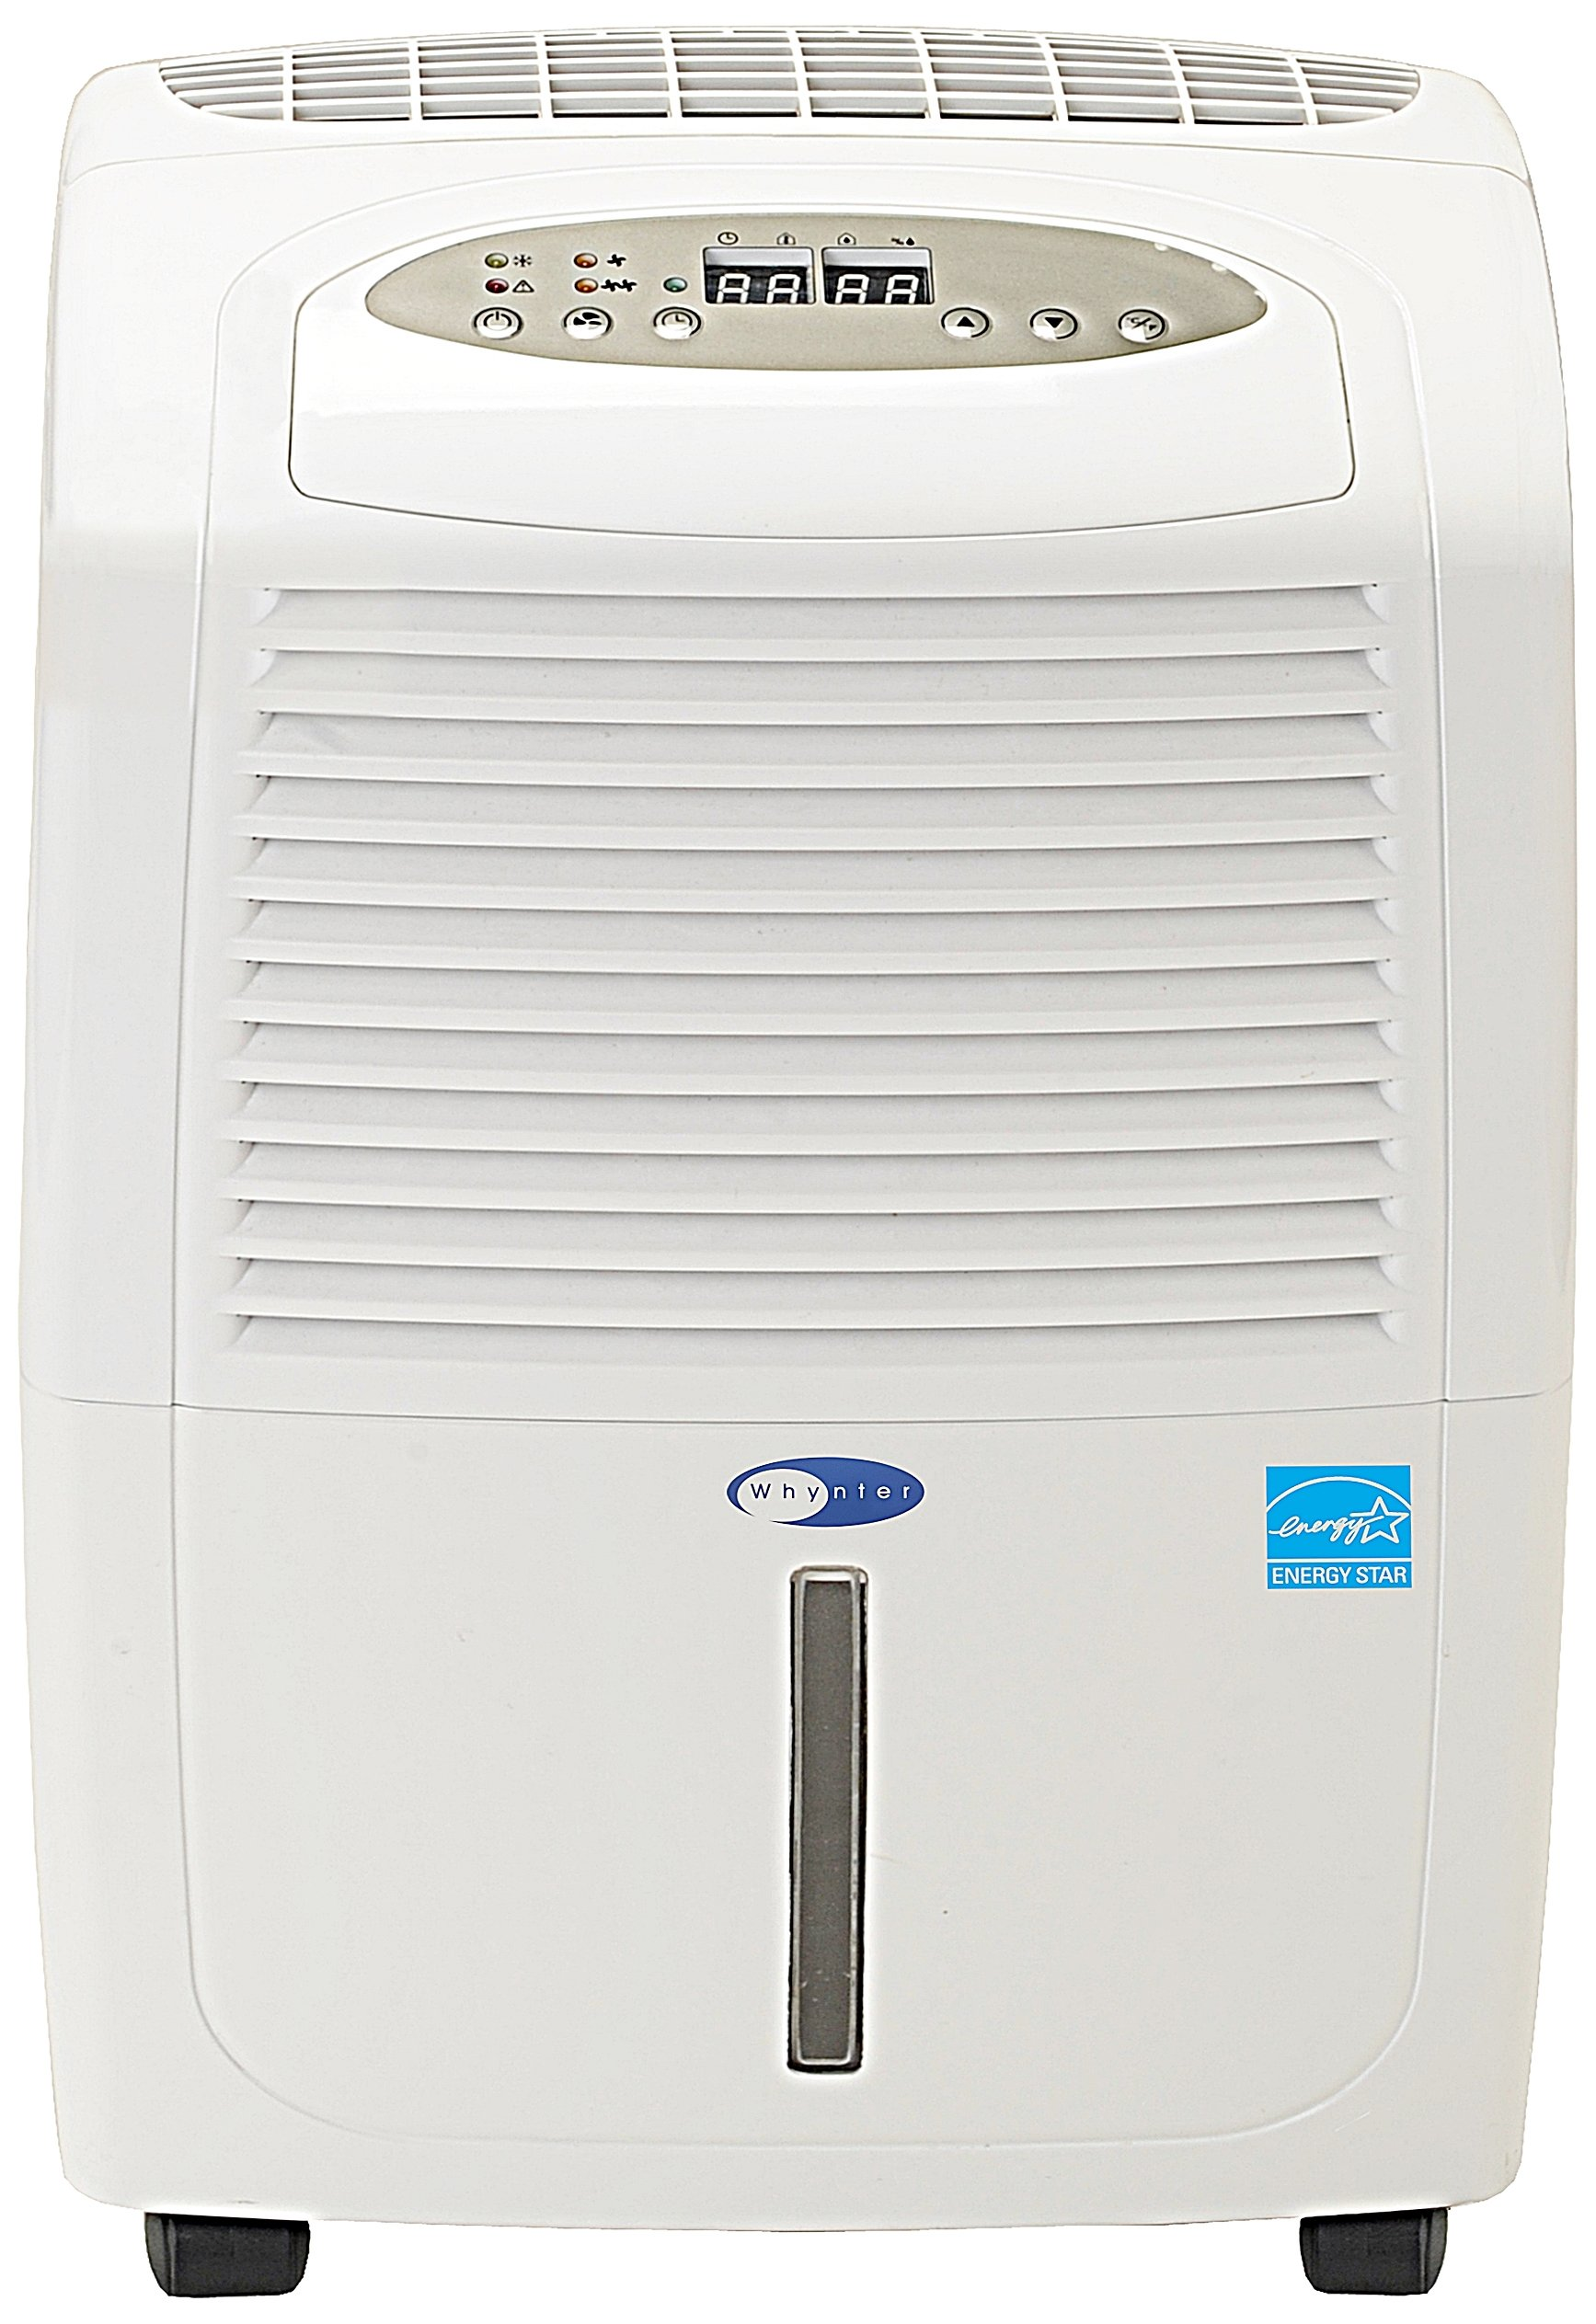 Whynter RPD-302W Energy Star Portable Dehumidifier, 30-Pint by Whynter